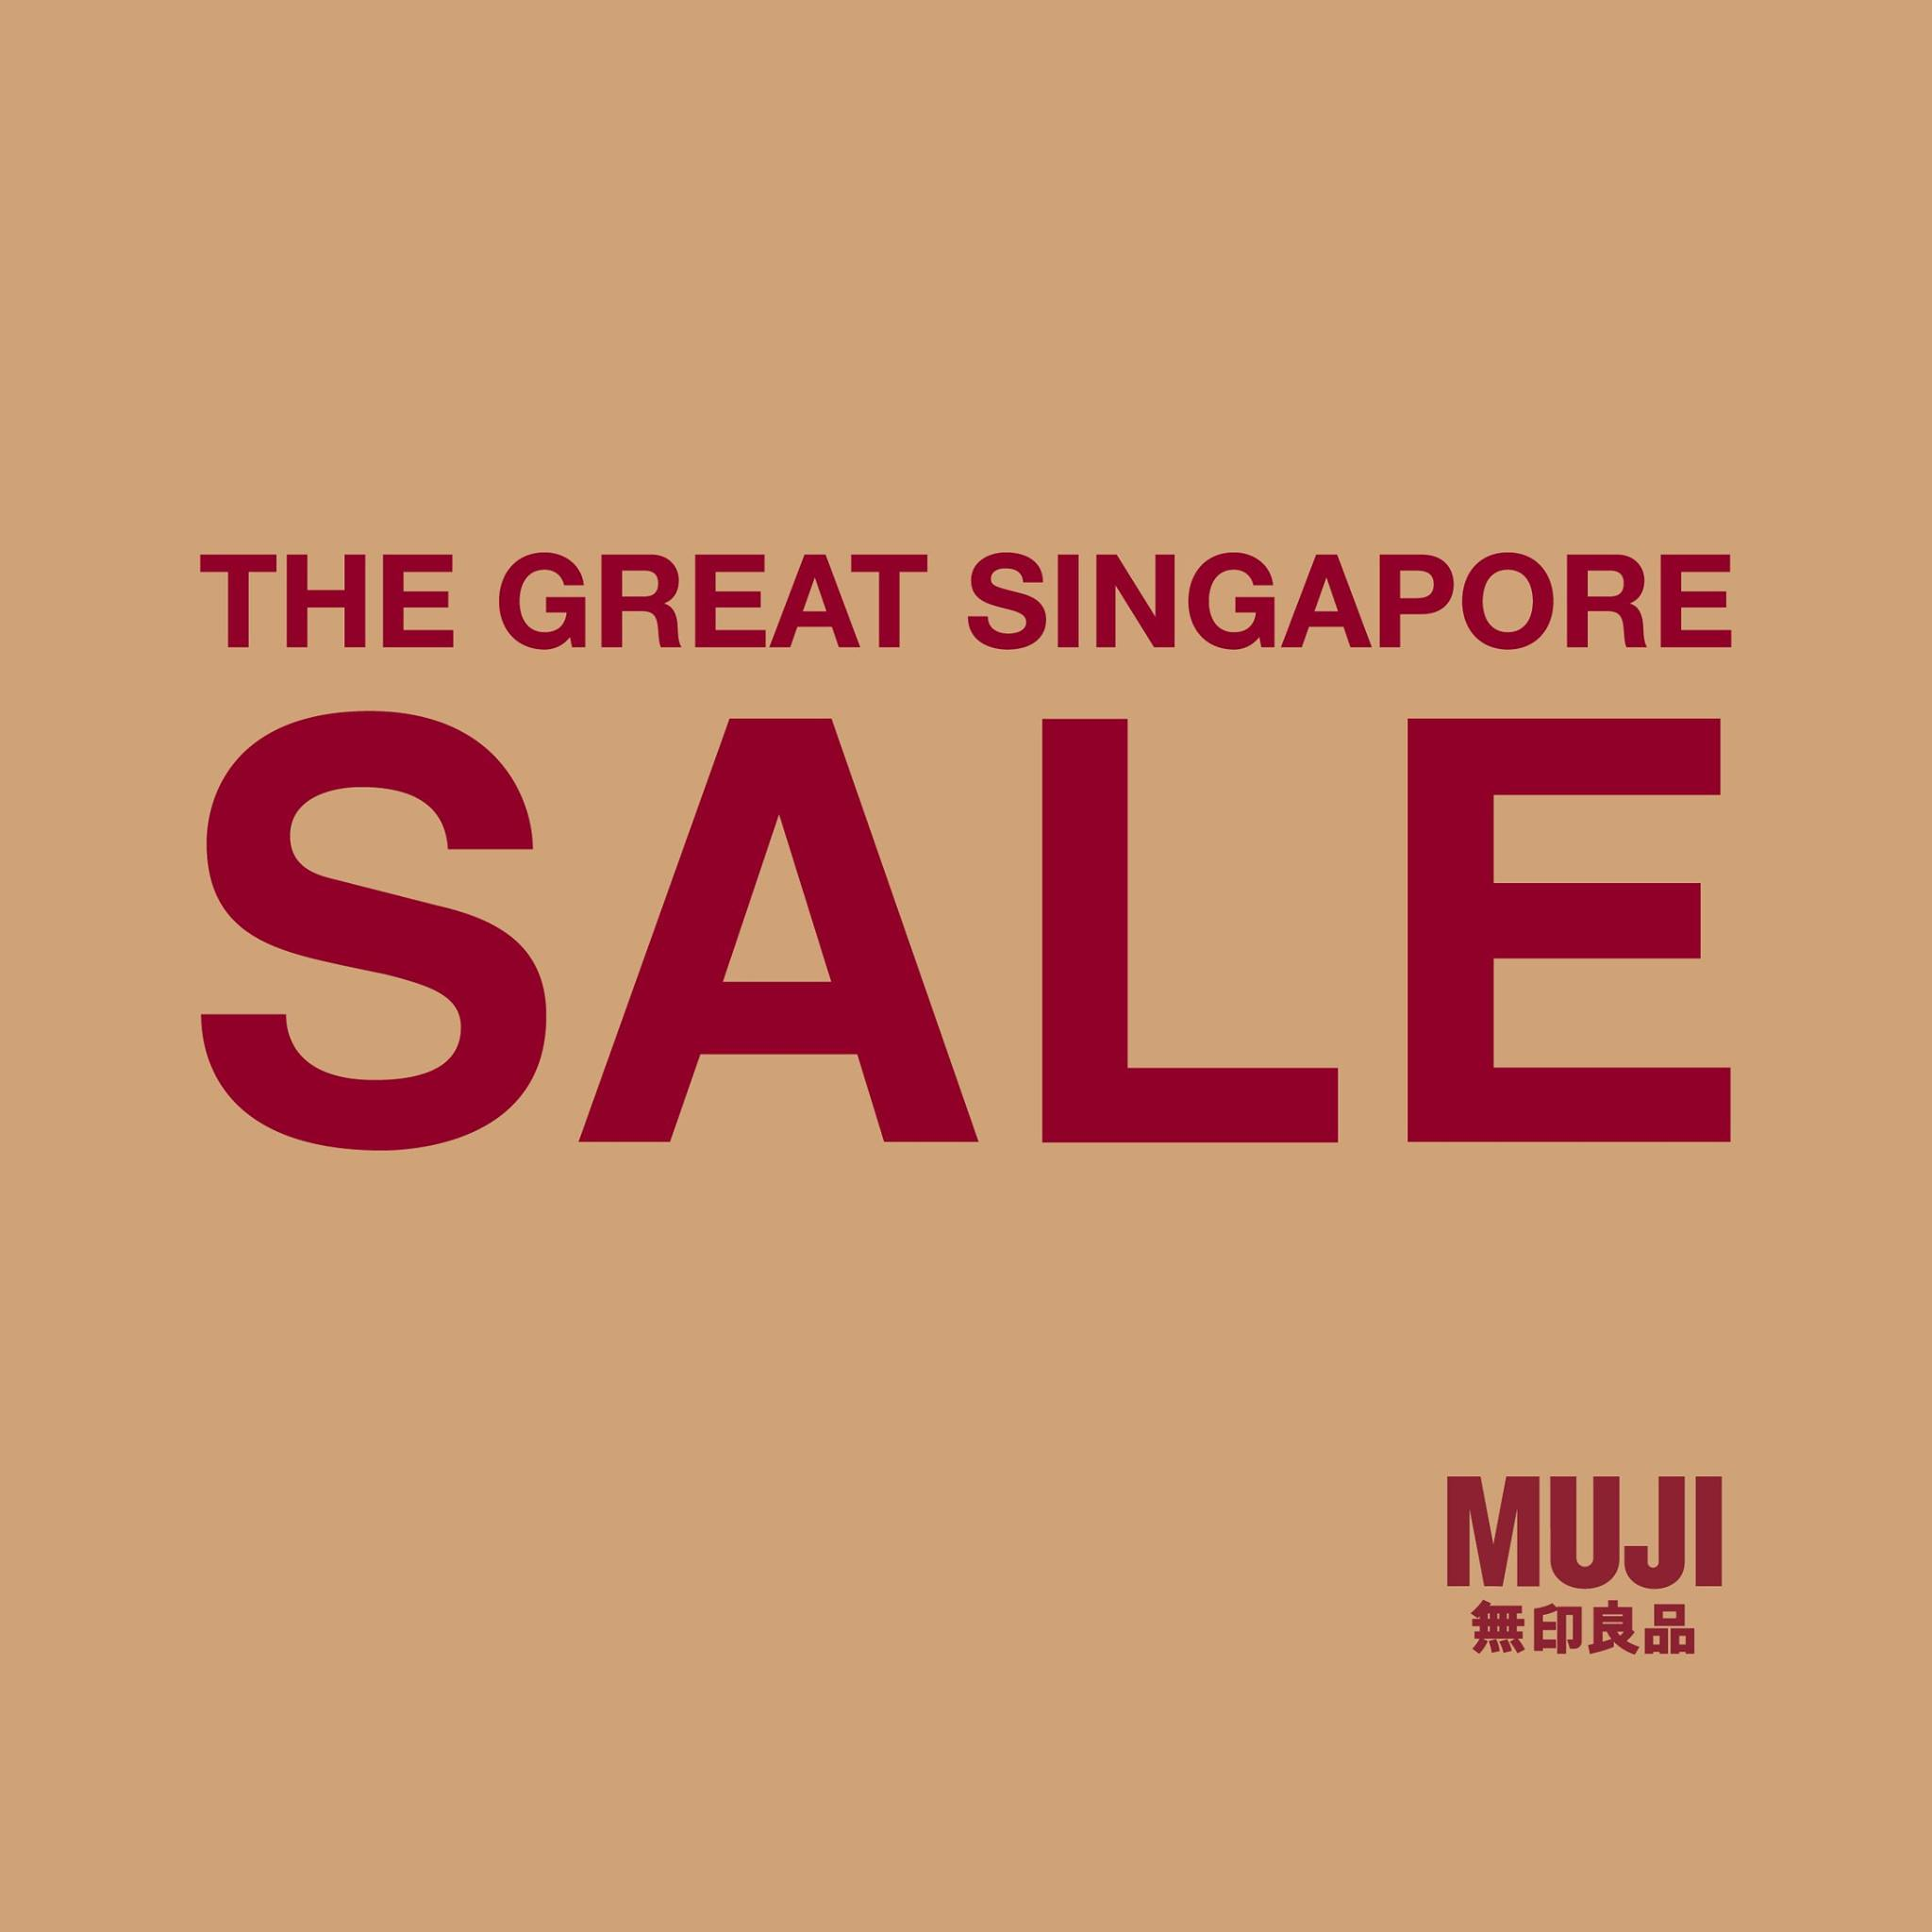 MUJI SG Great Singapore Sale Up to 50% Off